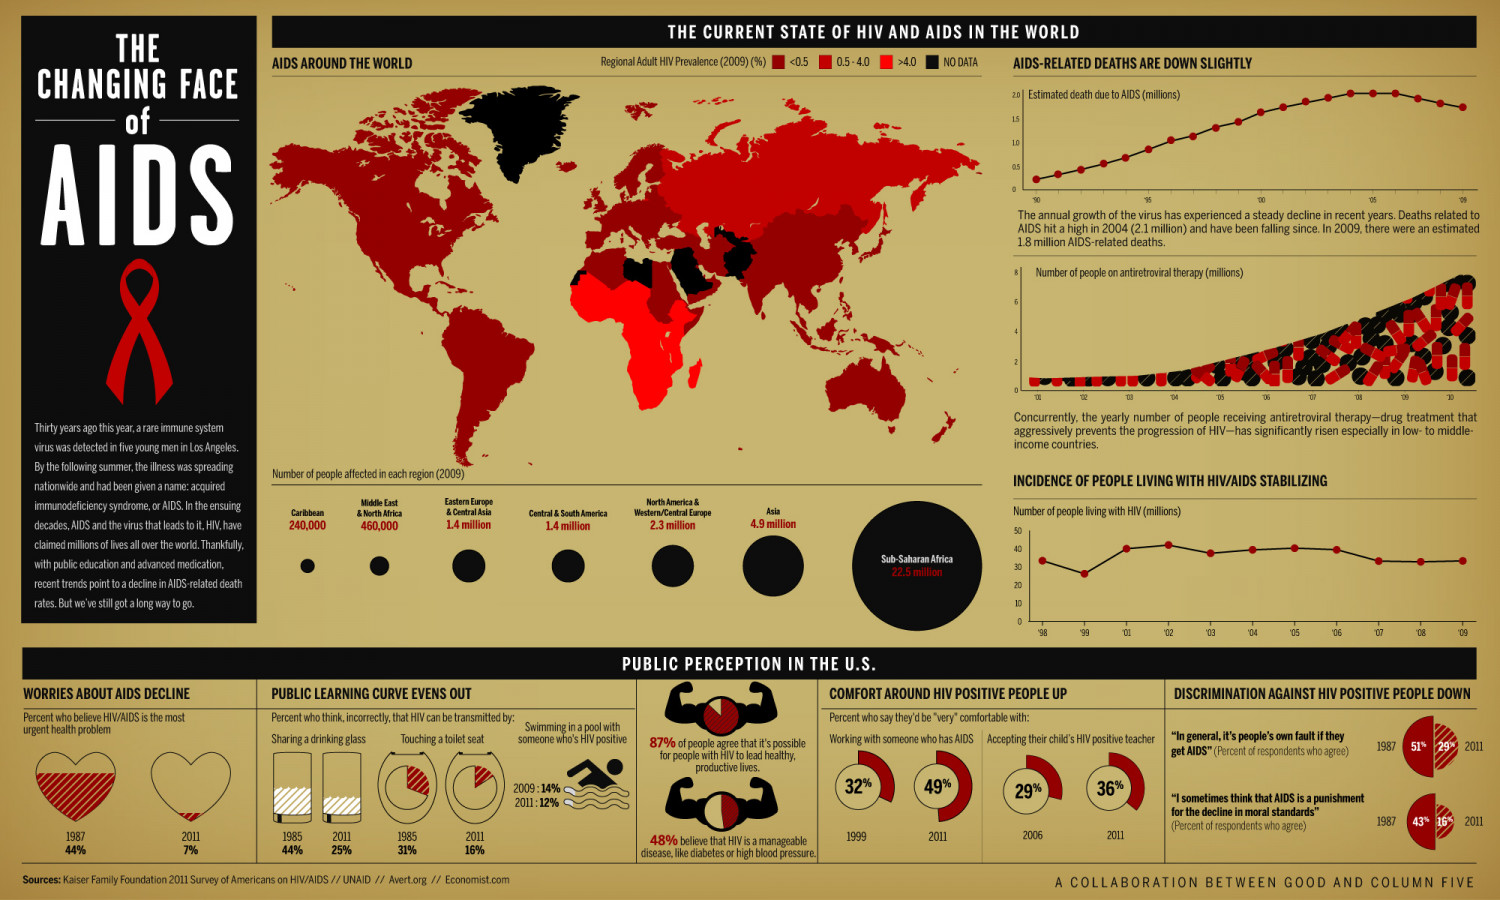 The Changing Face of AIDS Infographic